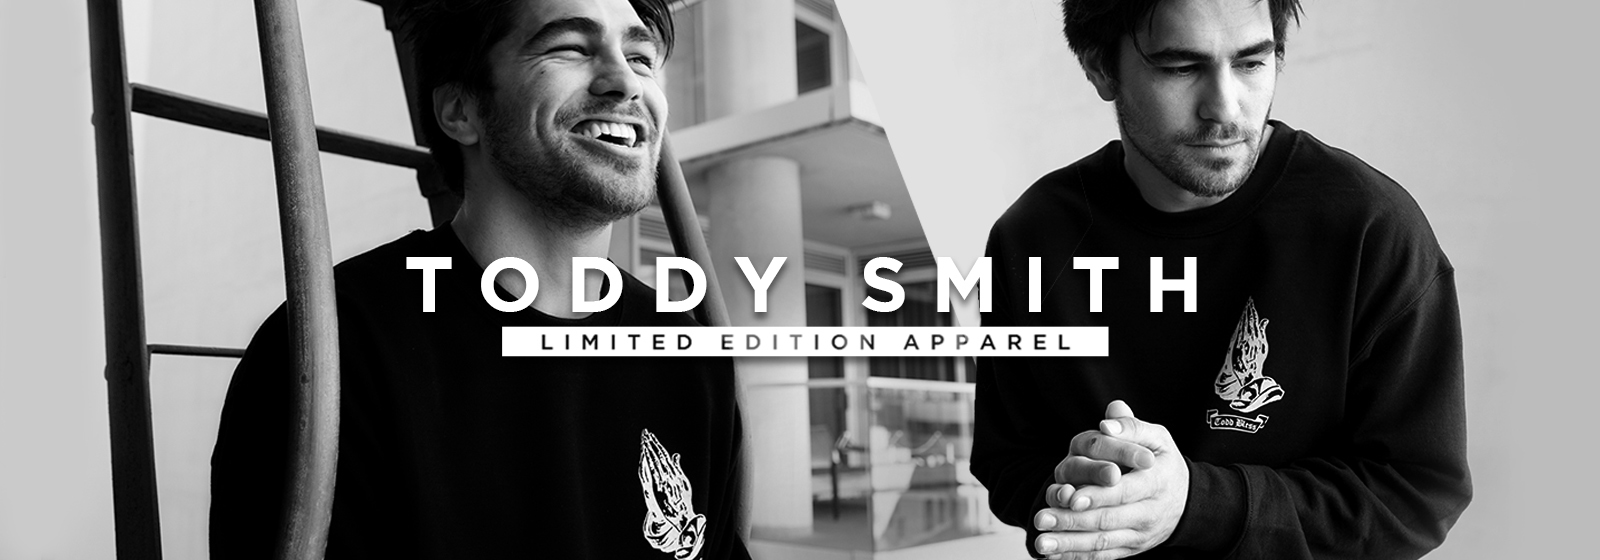 Toddy Smith Store Store